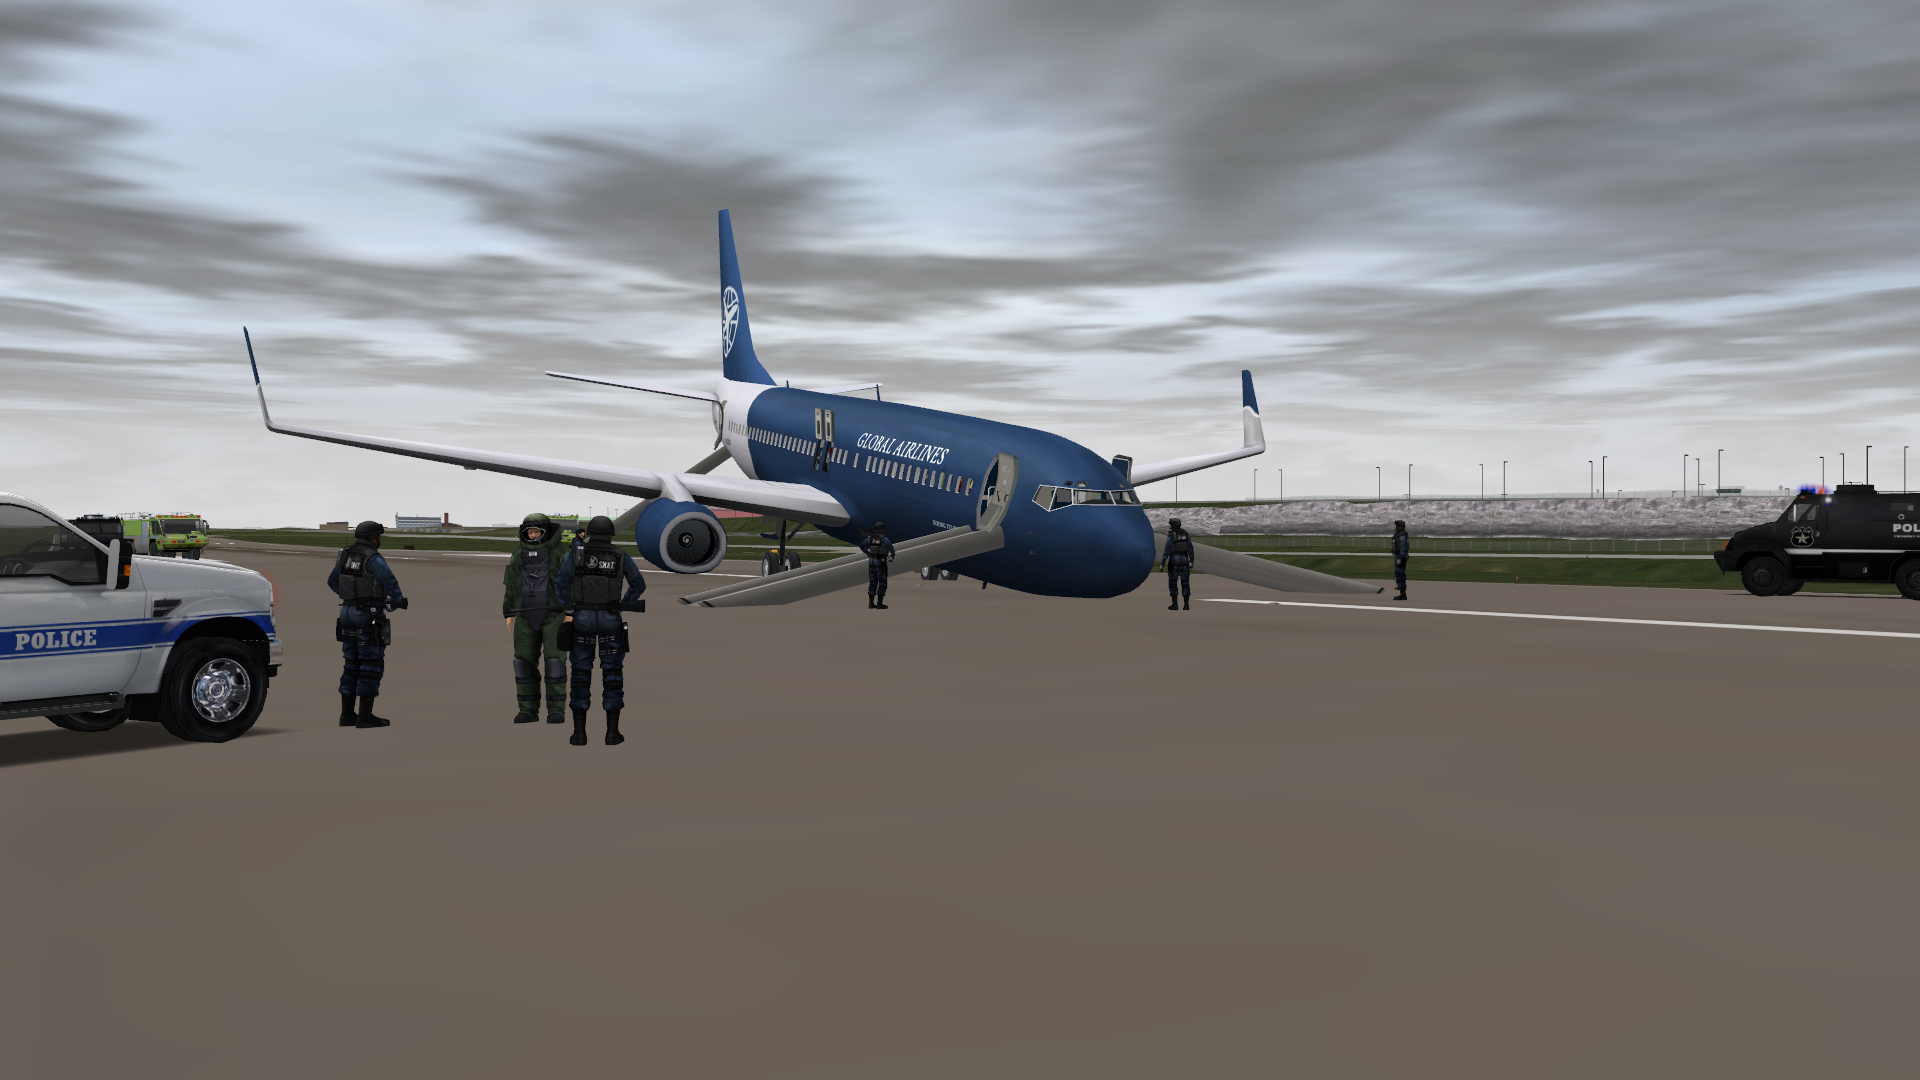 Special forces surrounding a hijacked plane that crash-landed at the airport, creative scenario built with ADMS.